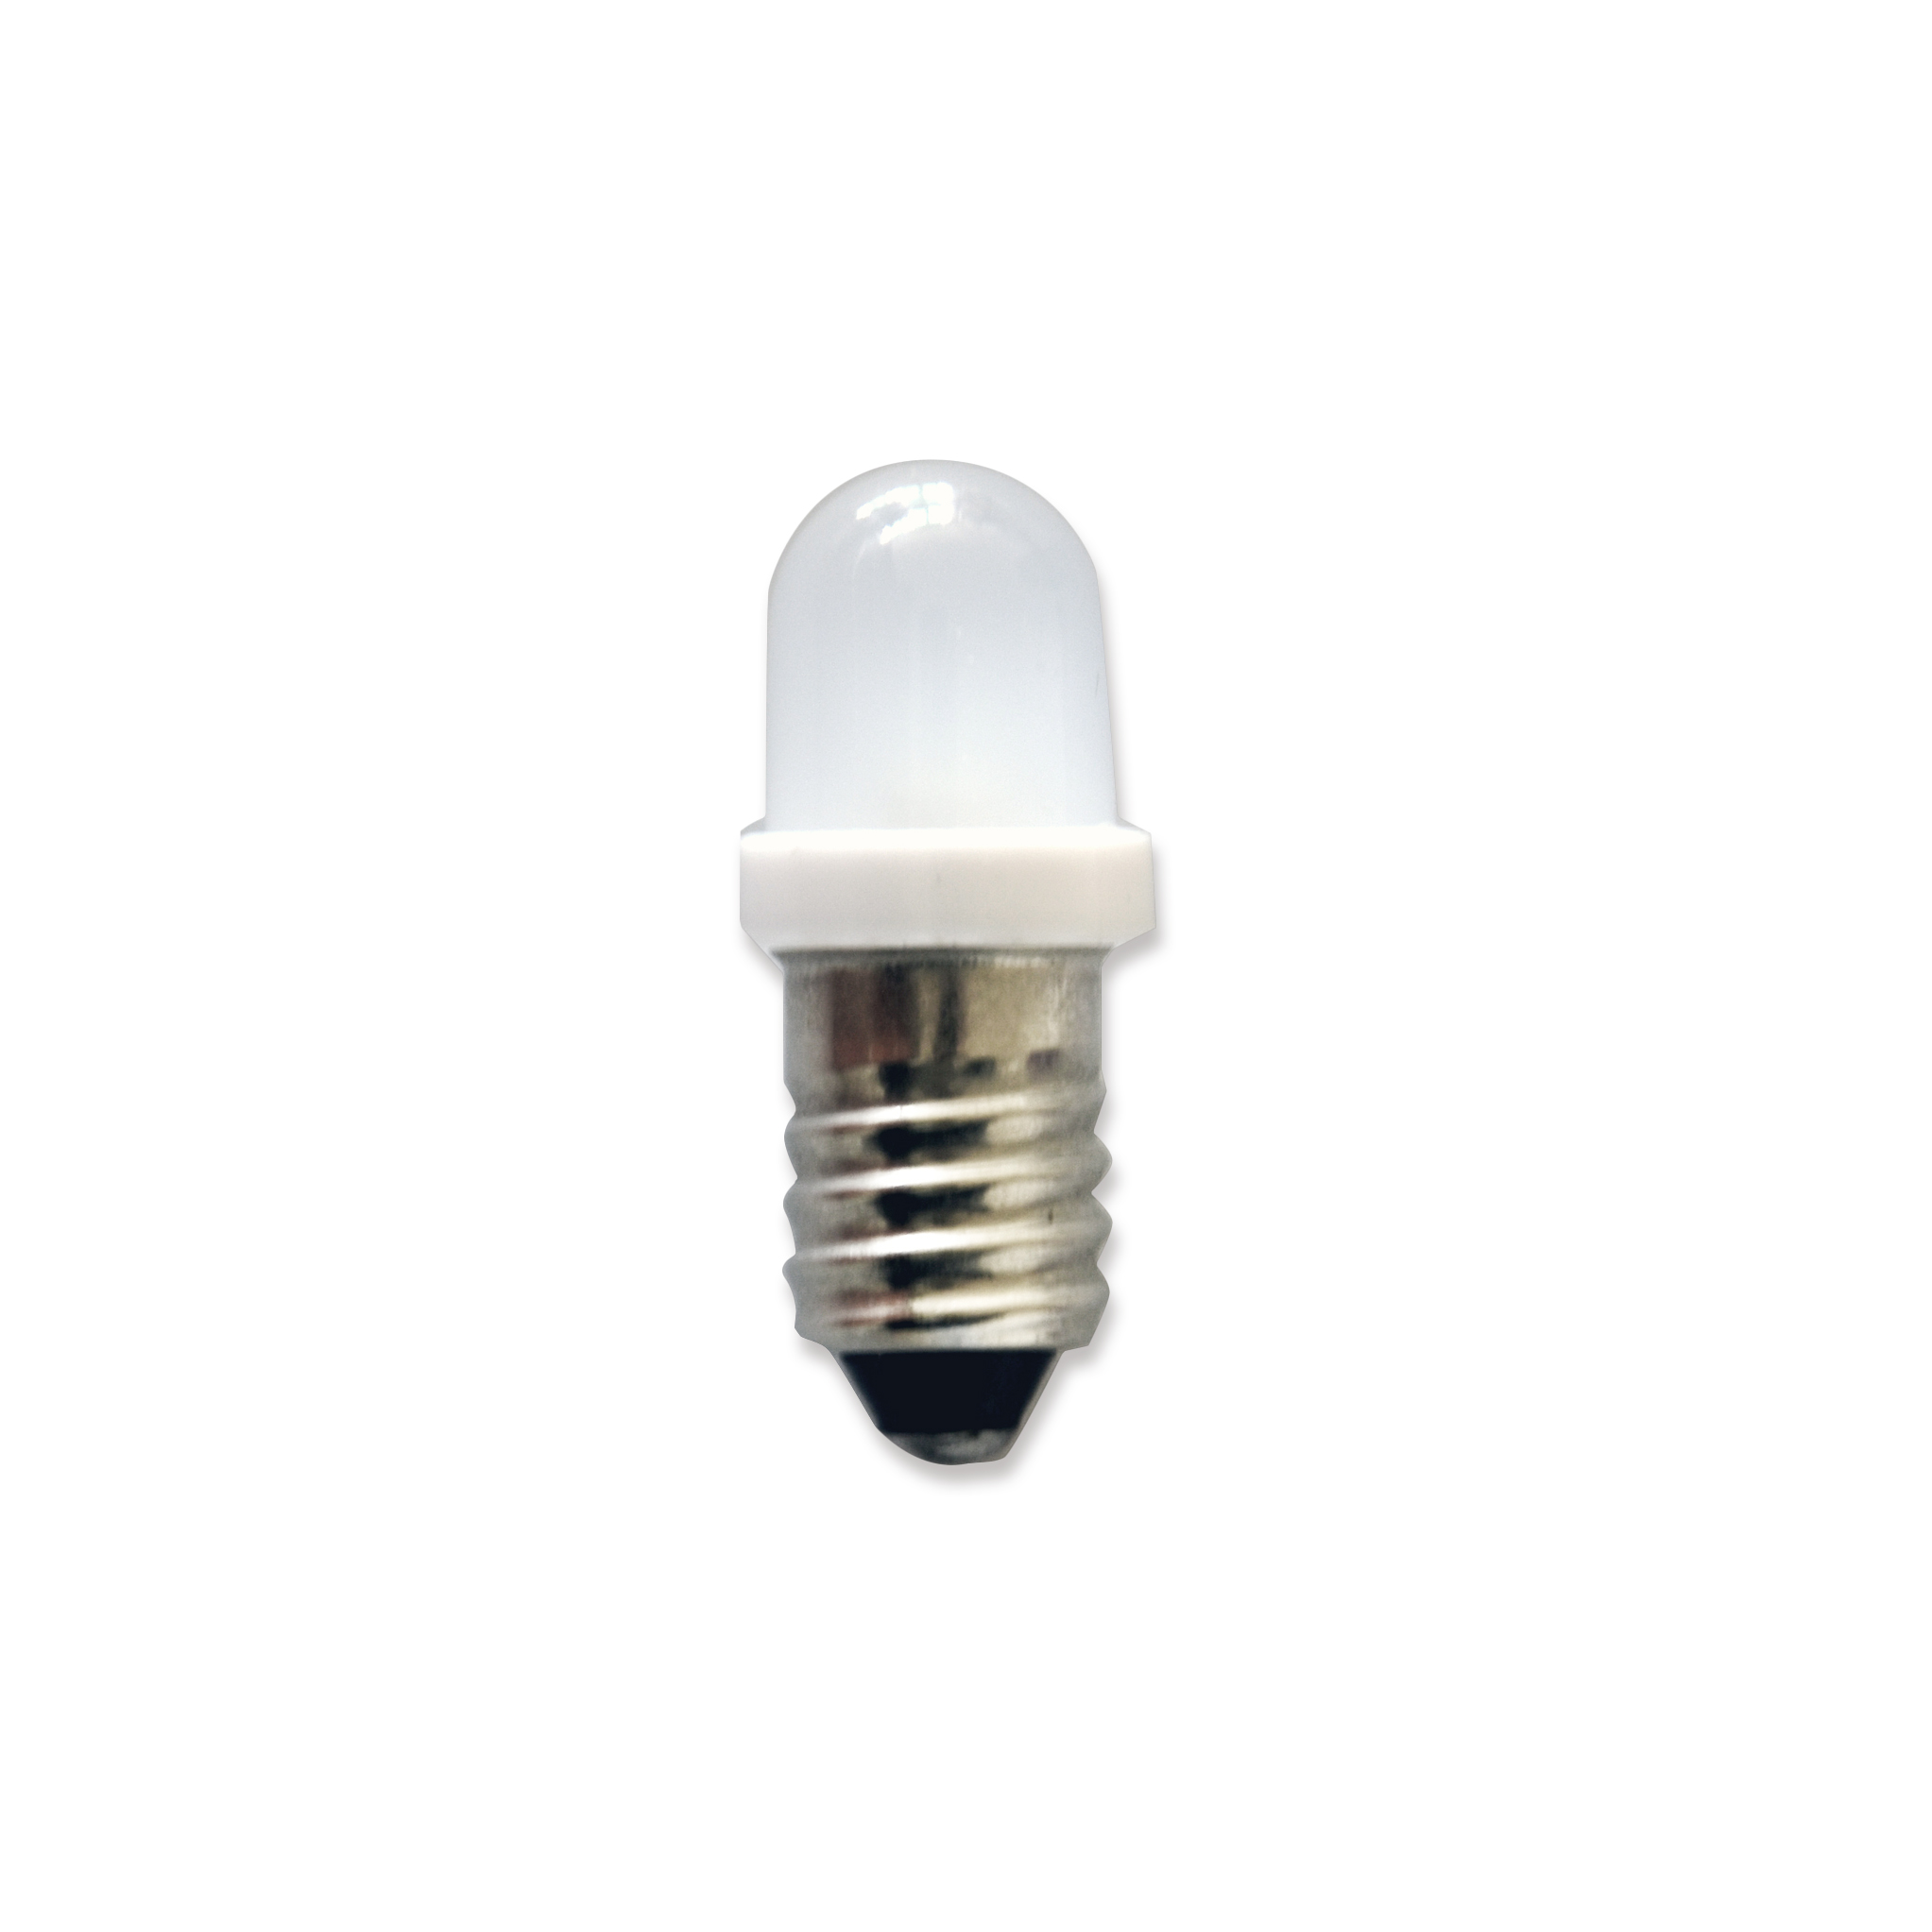 E10 LED Bulb Frosted/ Water Clear Lens 3000K-7000K